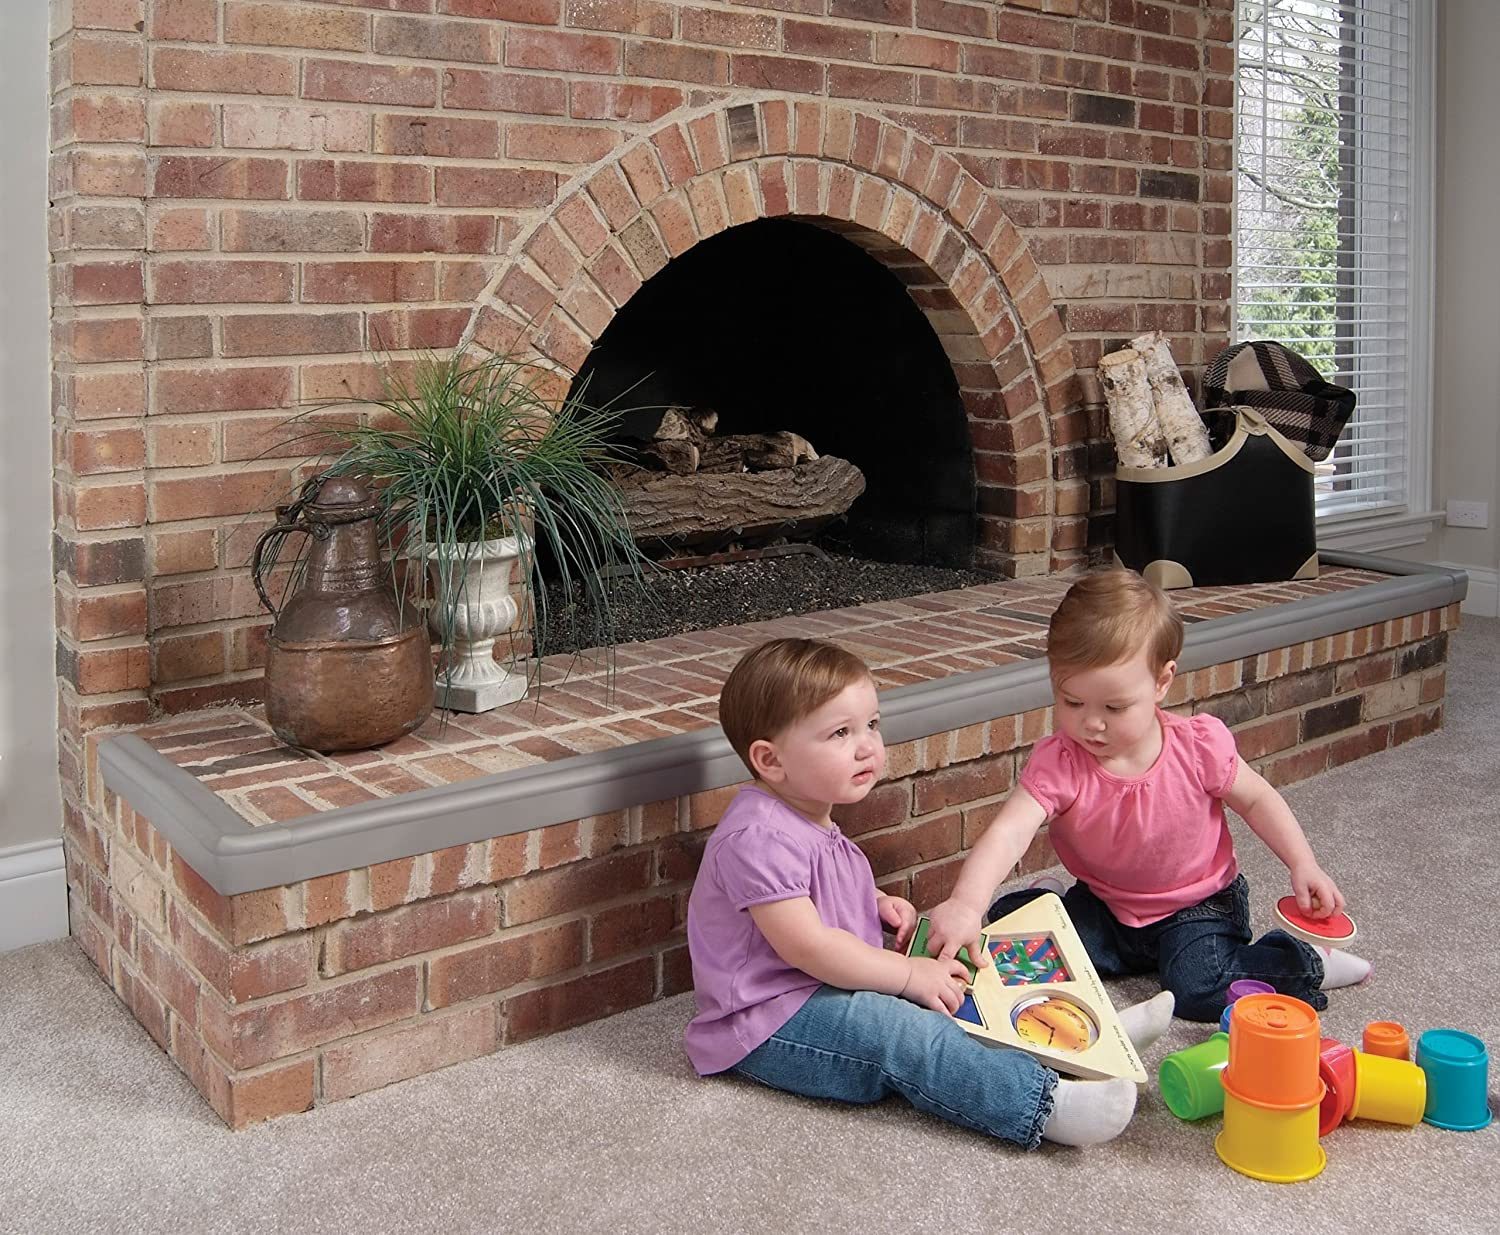 amazon com kidco hearth guard furniture edge safety bumpers baby